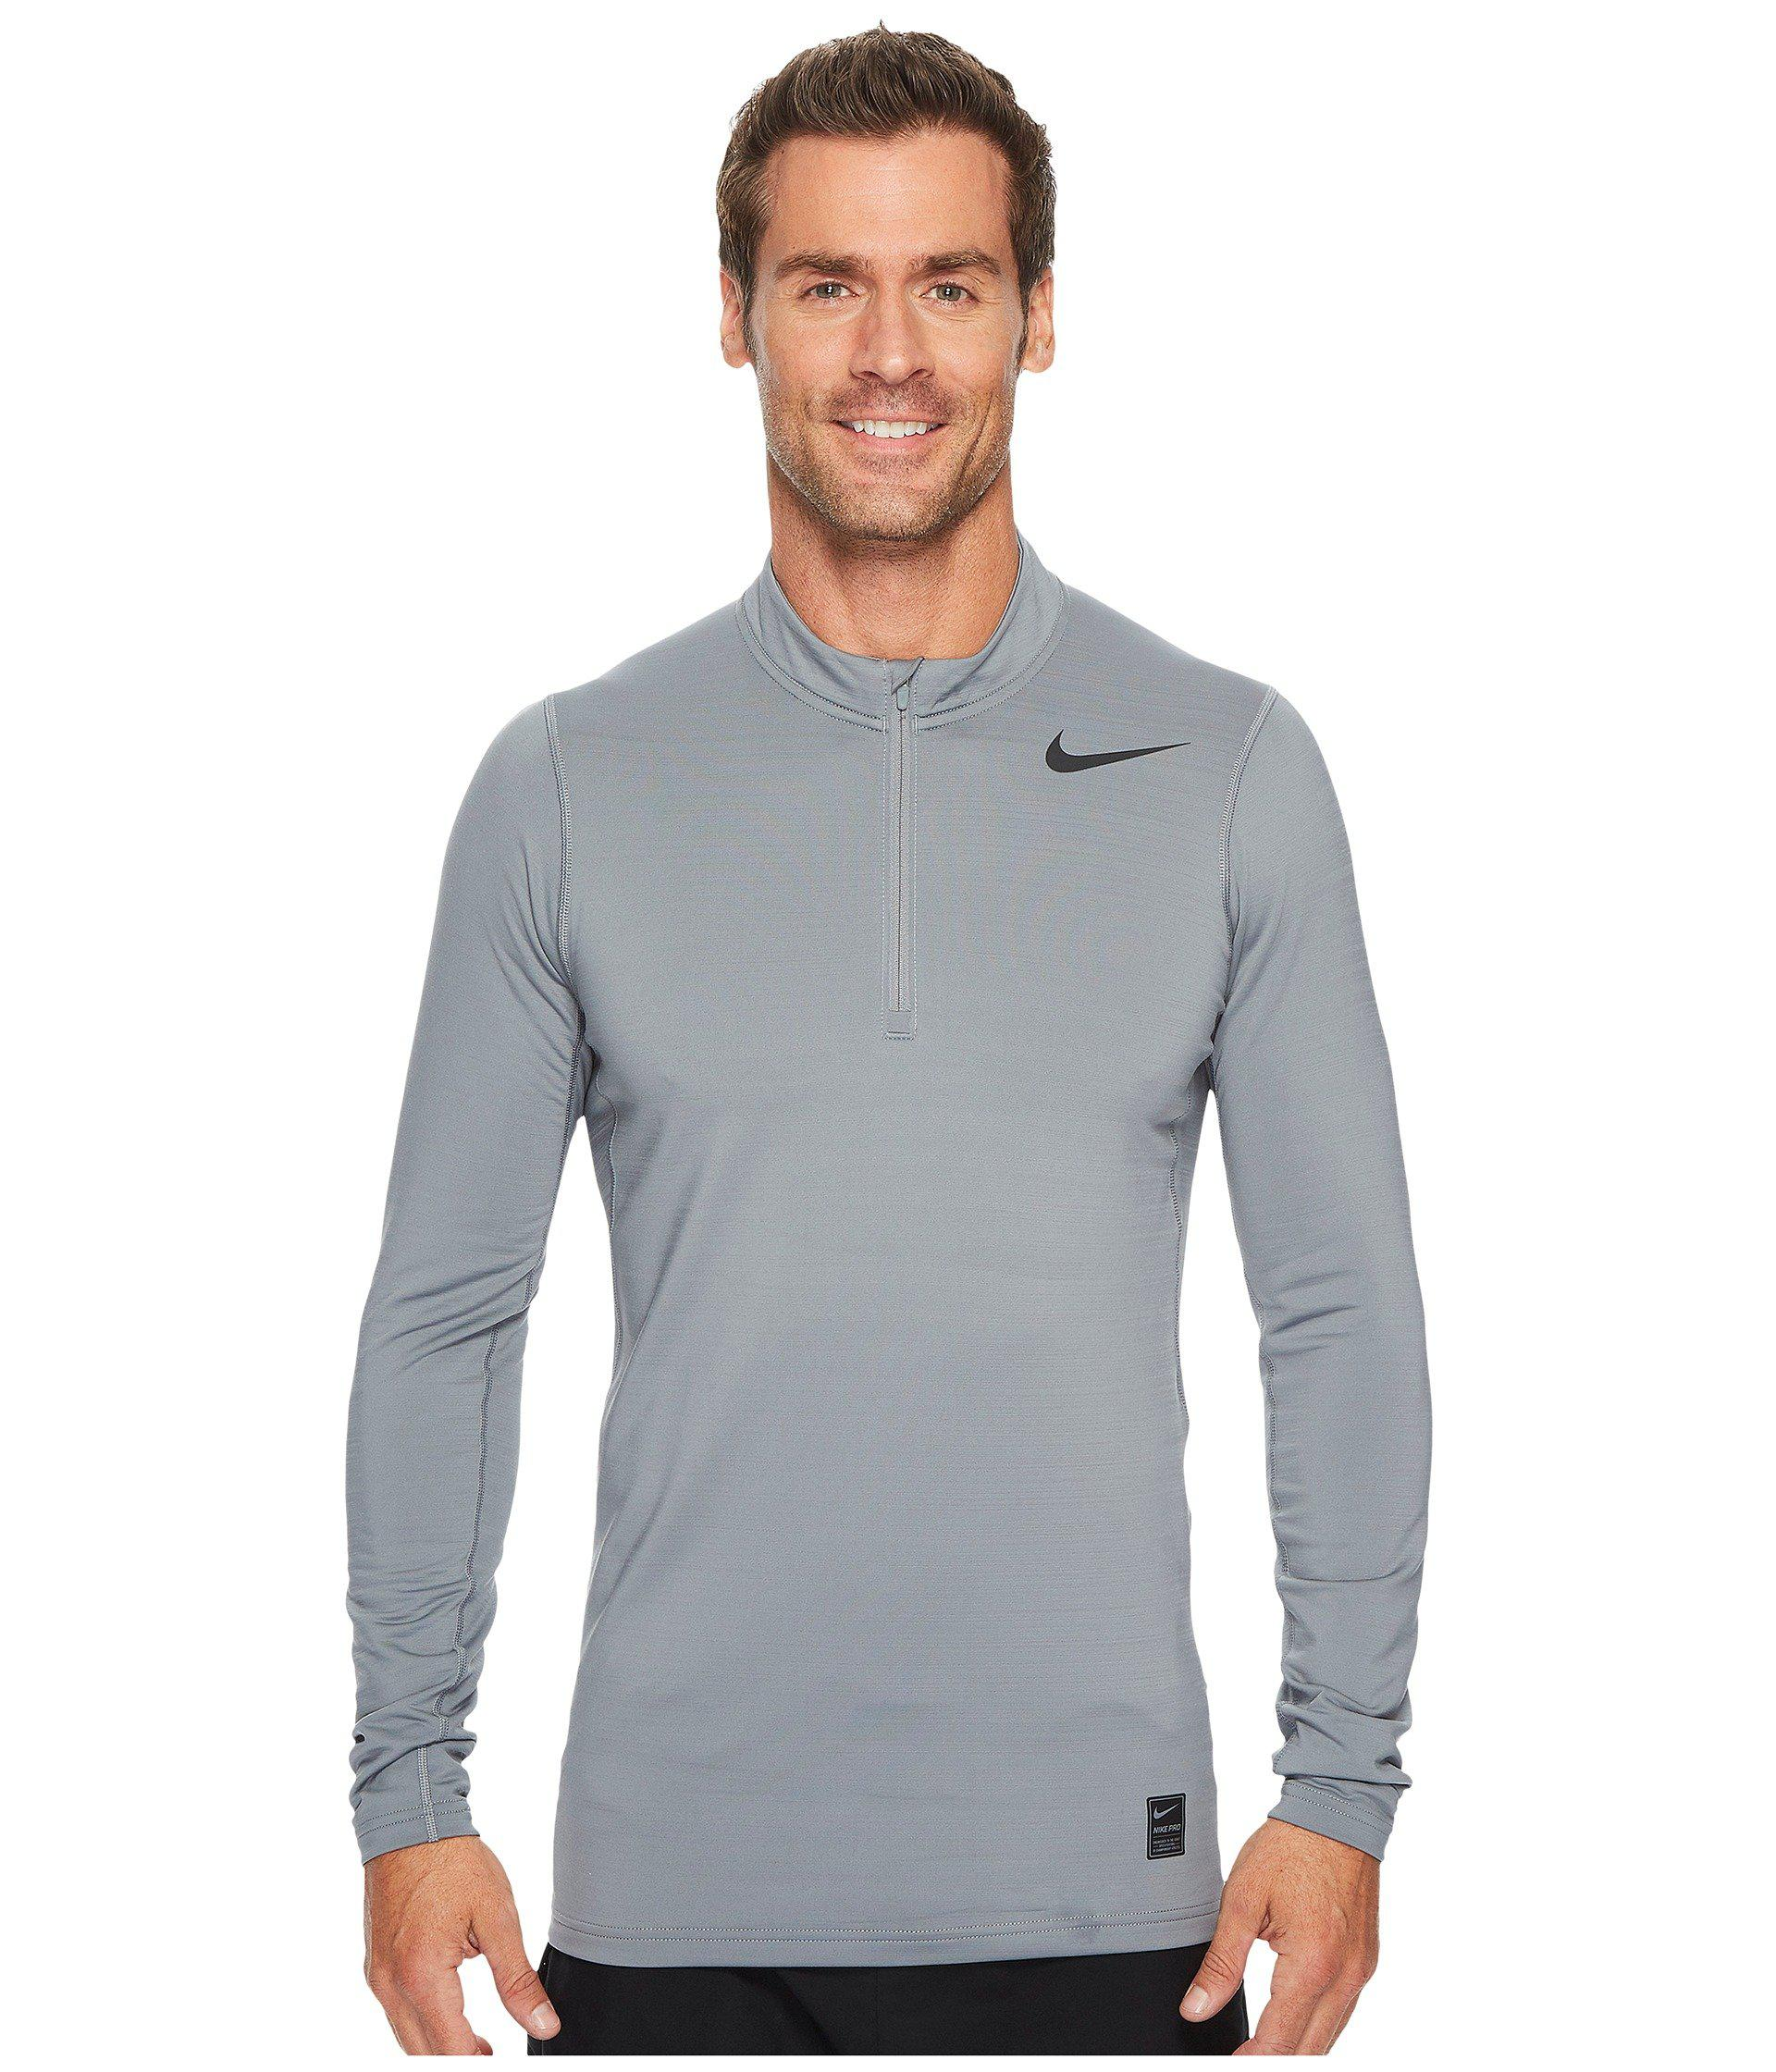 002b6ed46312 Lyst - Nike Pro Warm 1 4-zip Top in Gray for Men - Save 33%